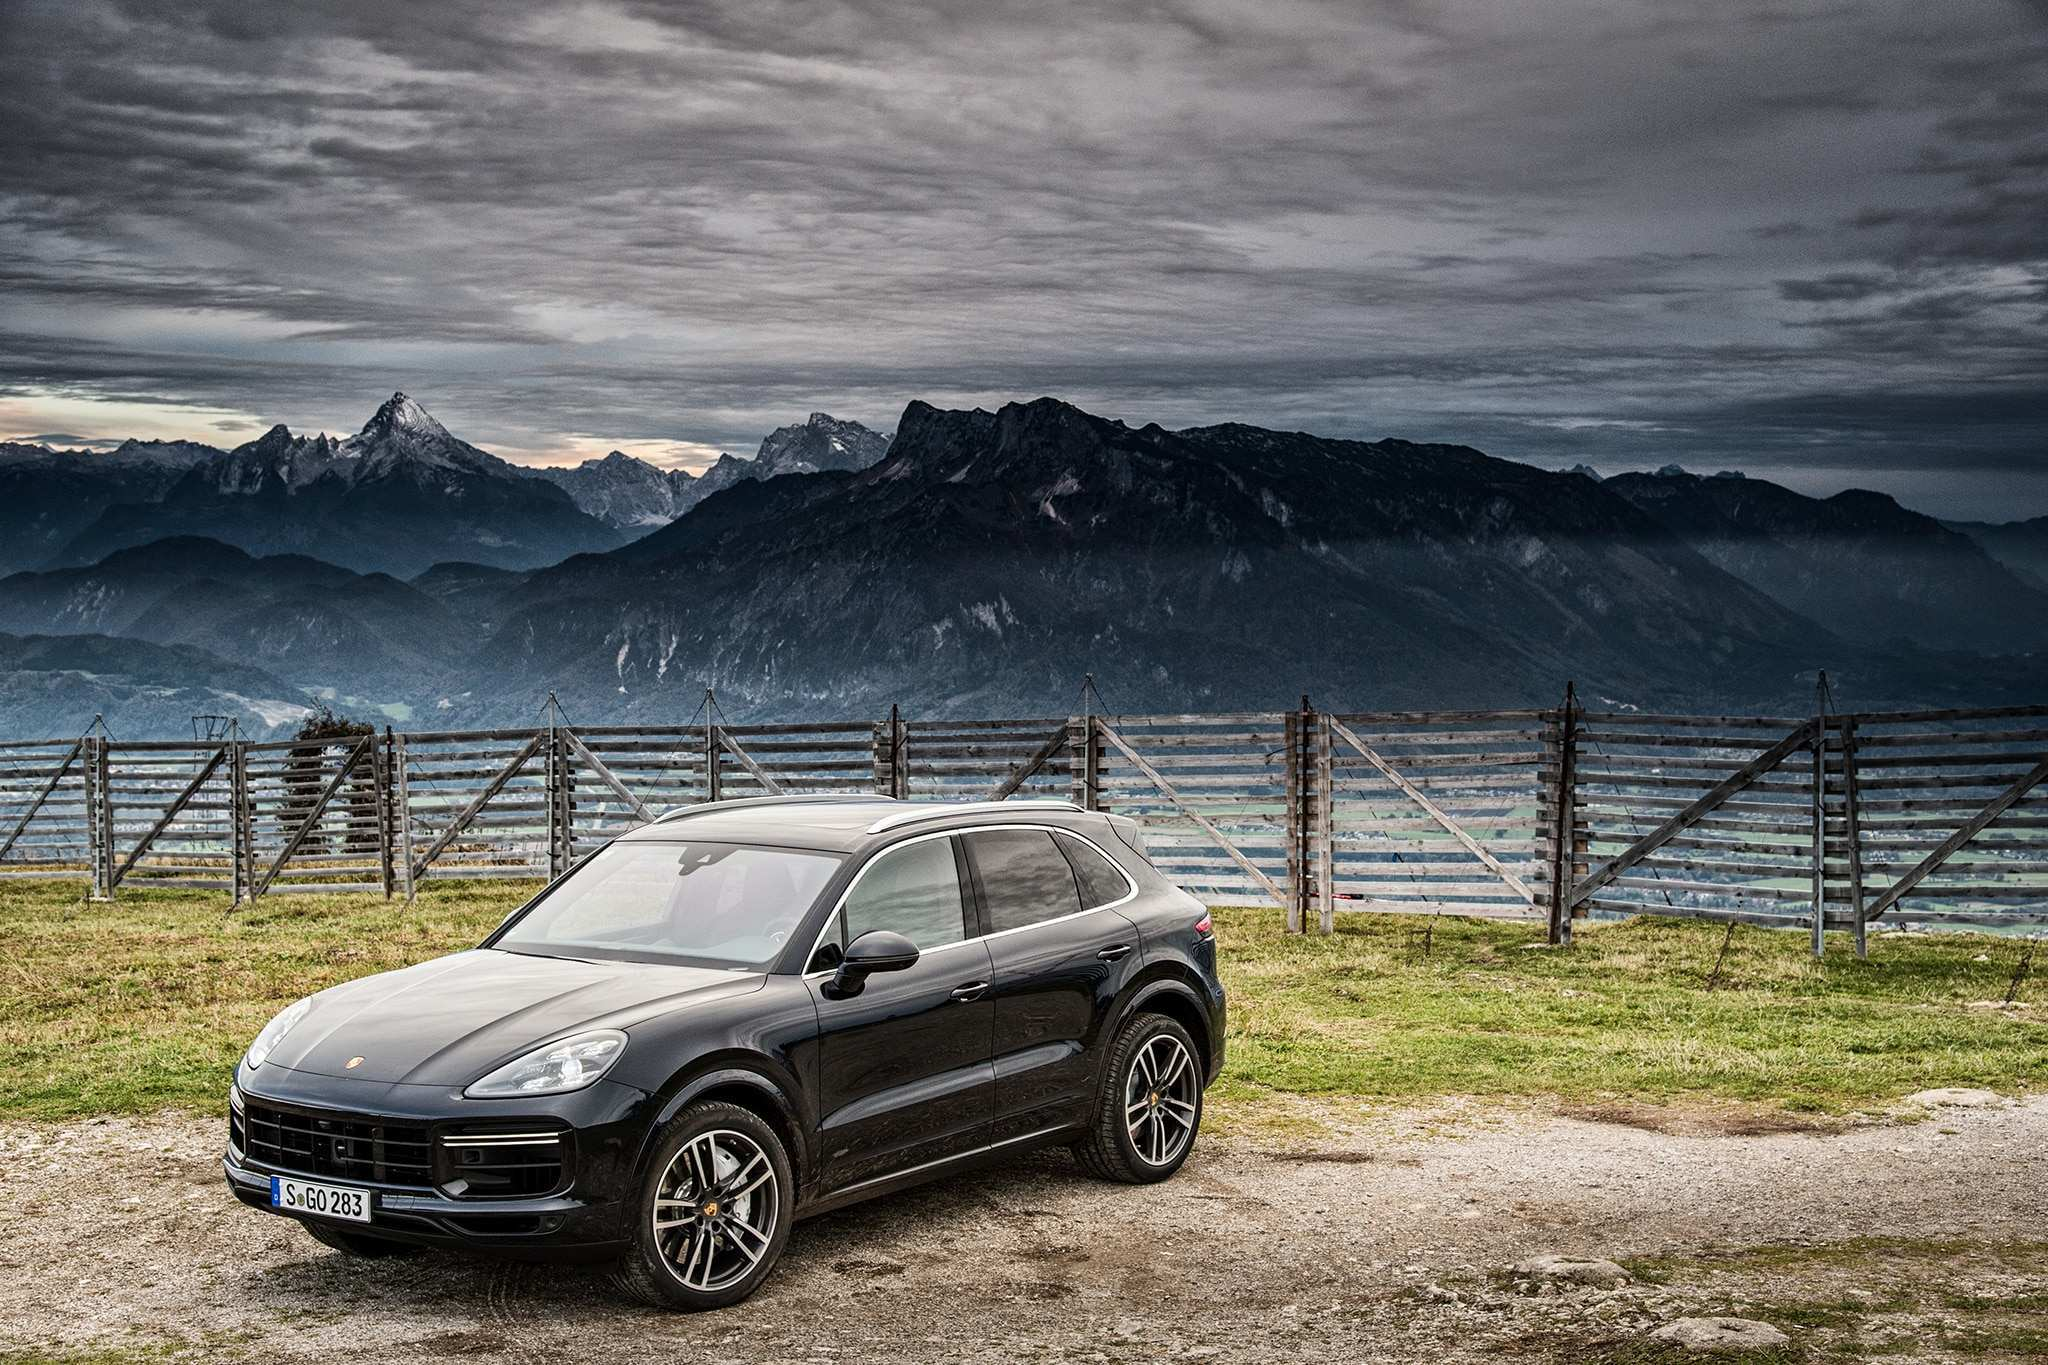 30 Best 2019 Porsche Cayenne Turbo S Picture